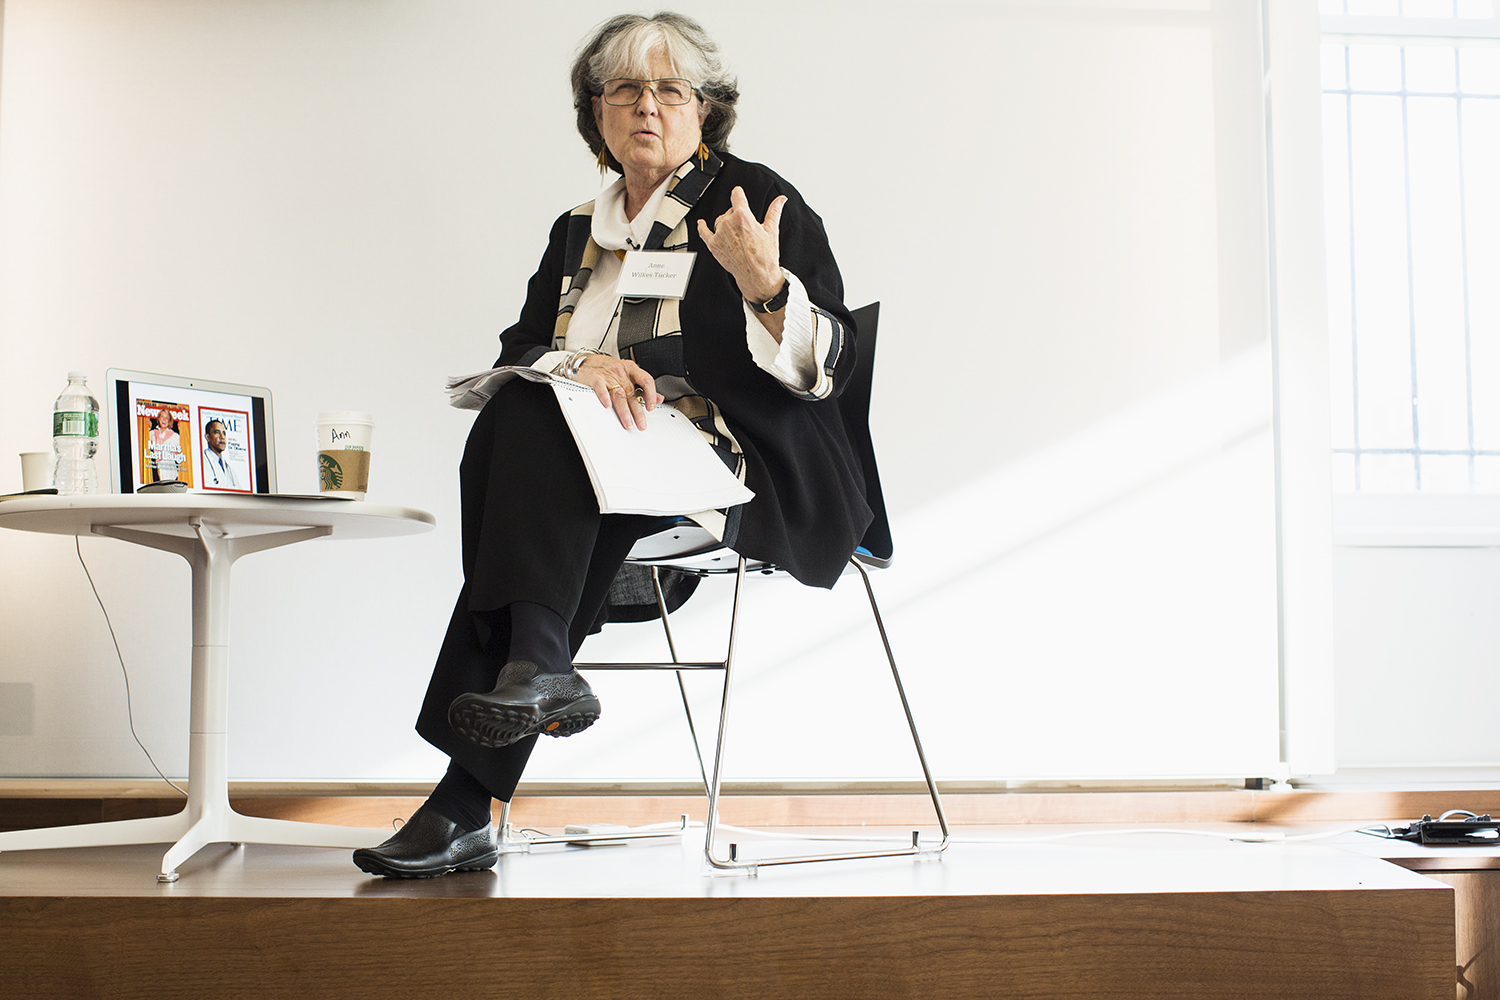 """Anne Wilkes Tucker (founding photographic curator, Museum of Fine Arts, Houston), moderator of """"What is a Photographer? The Future of Photography and the Professional Image-Maker"""" panel, Columbia Journalism School, NY, NY, October 16, 2015"""